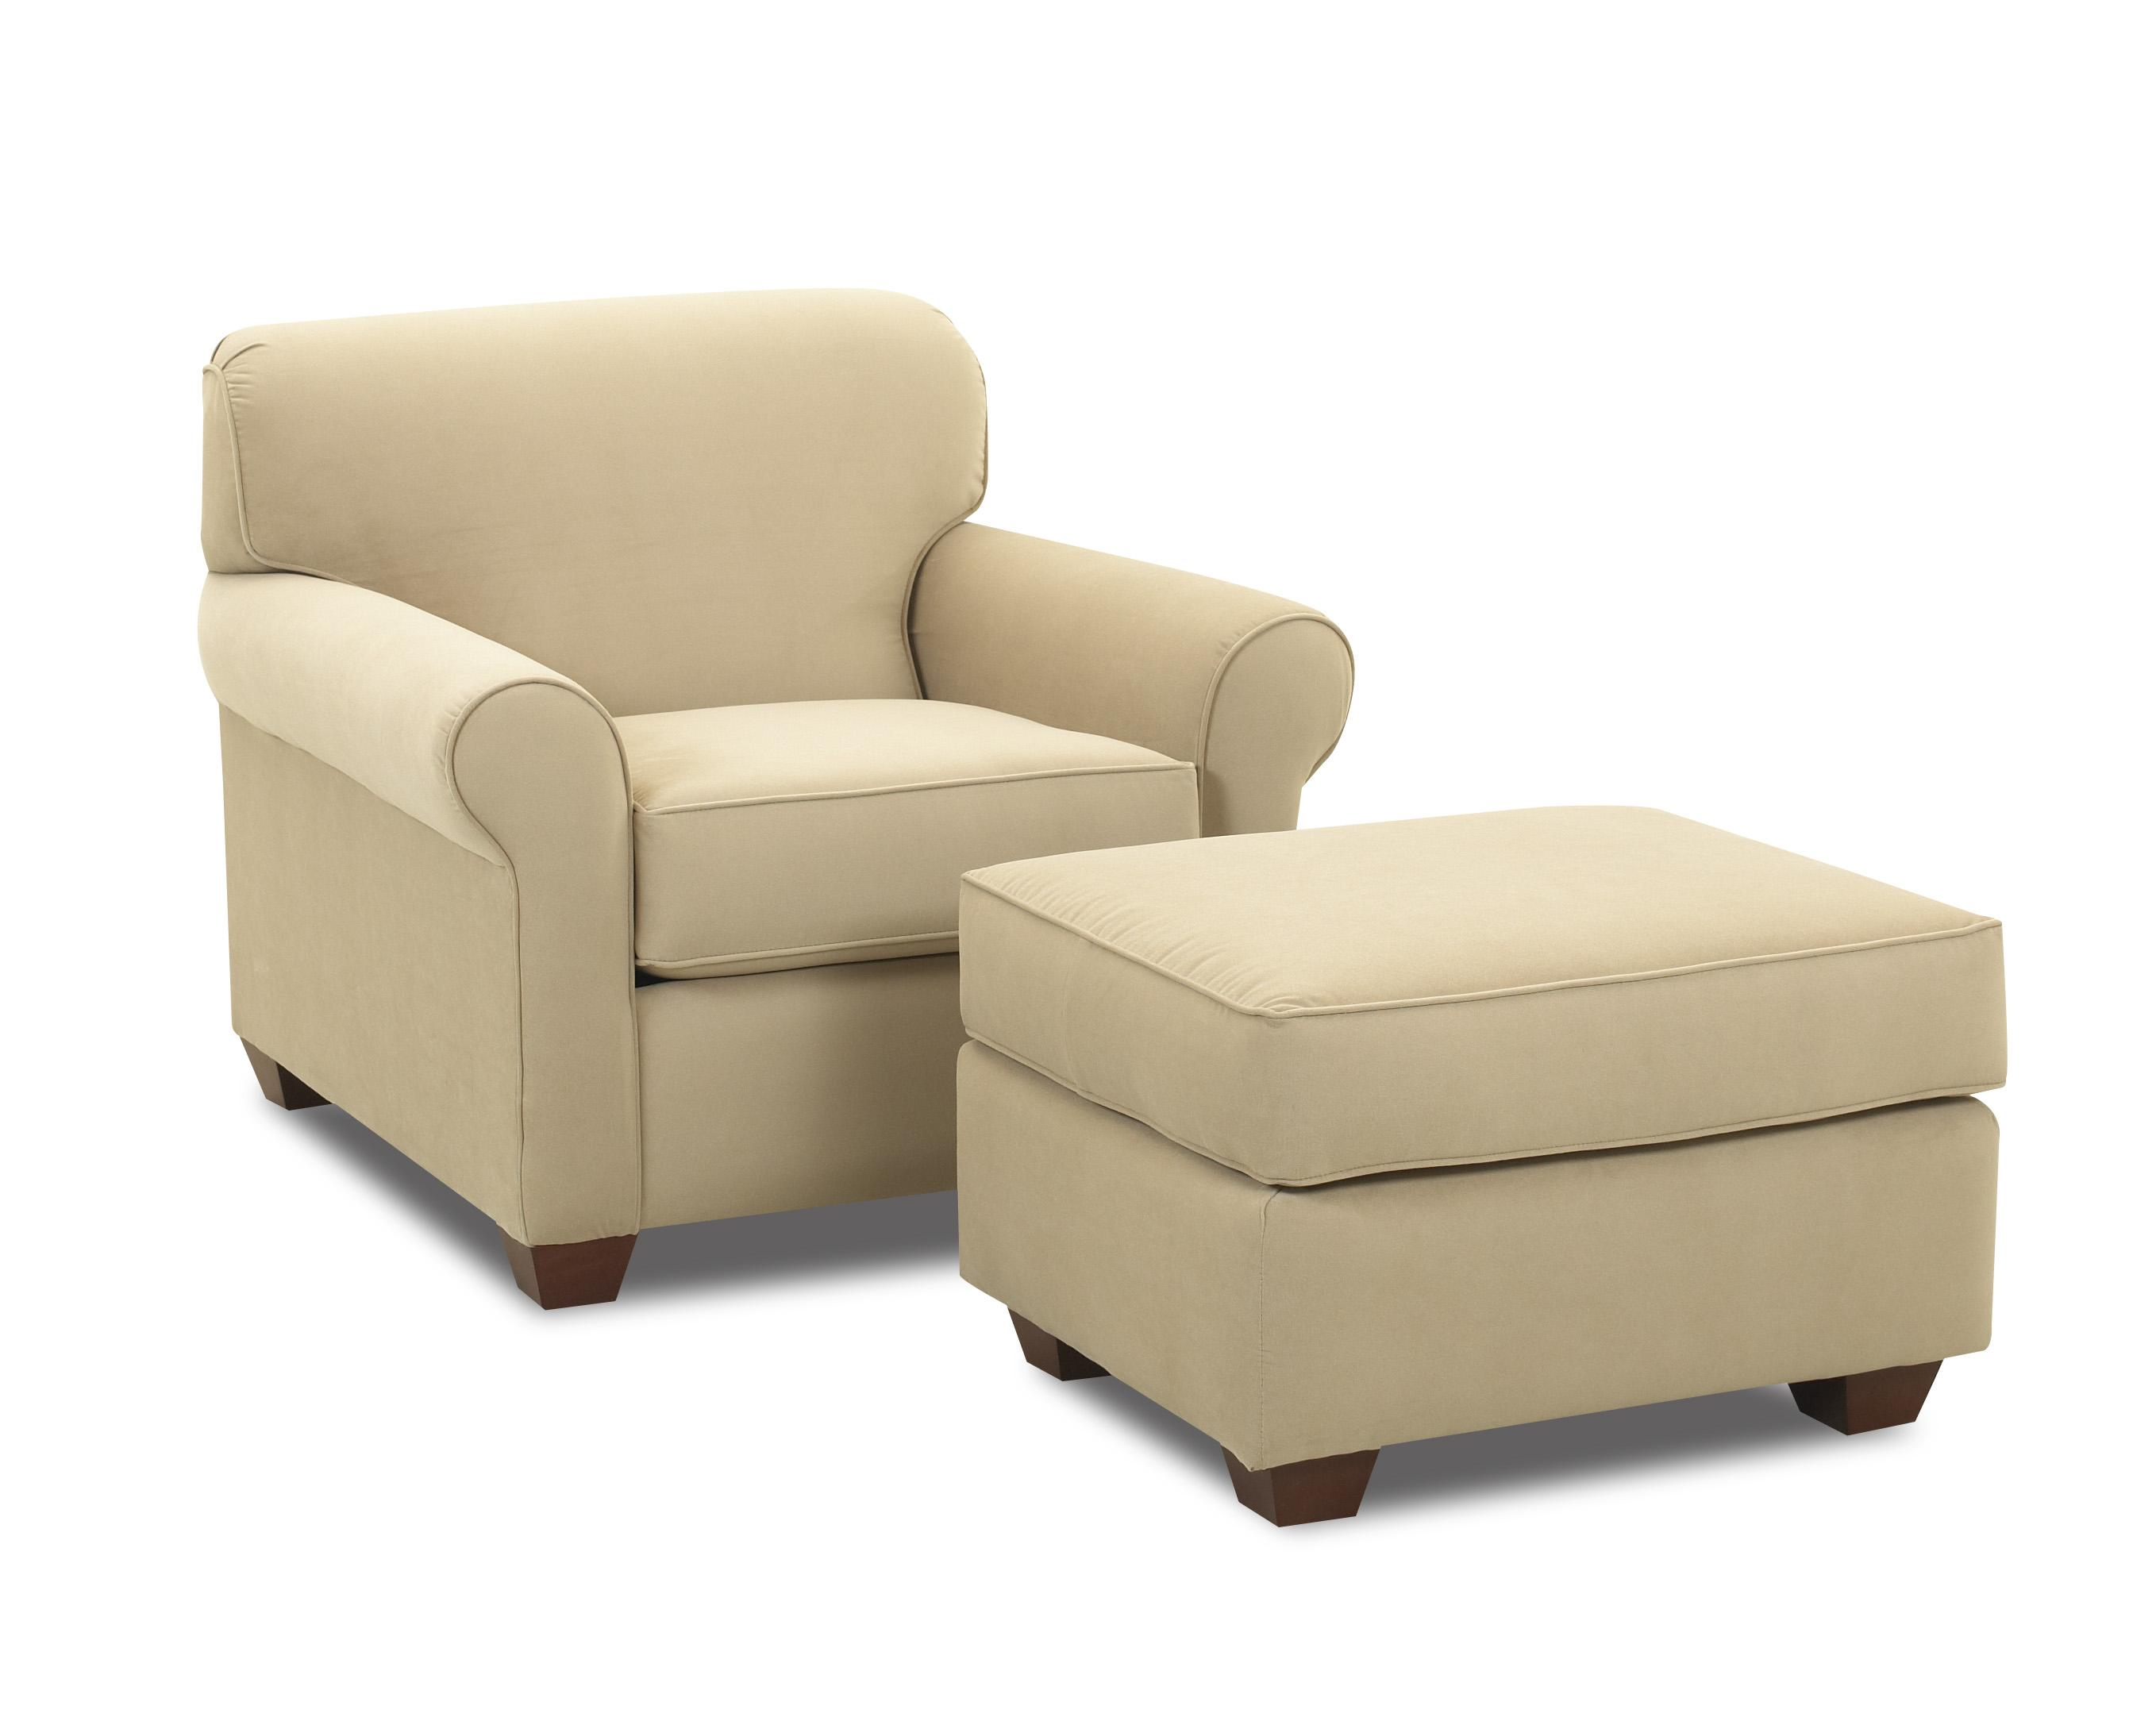 Klaussner Mayhew Chair and Ottoman - Item Number: 97900C+O